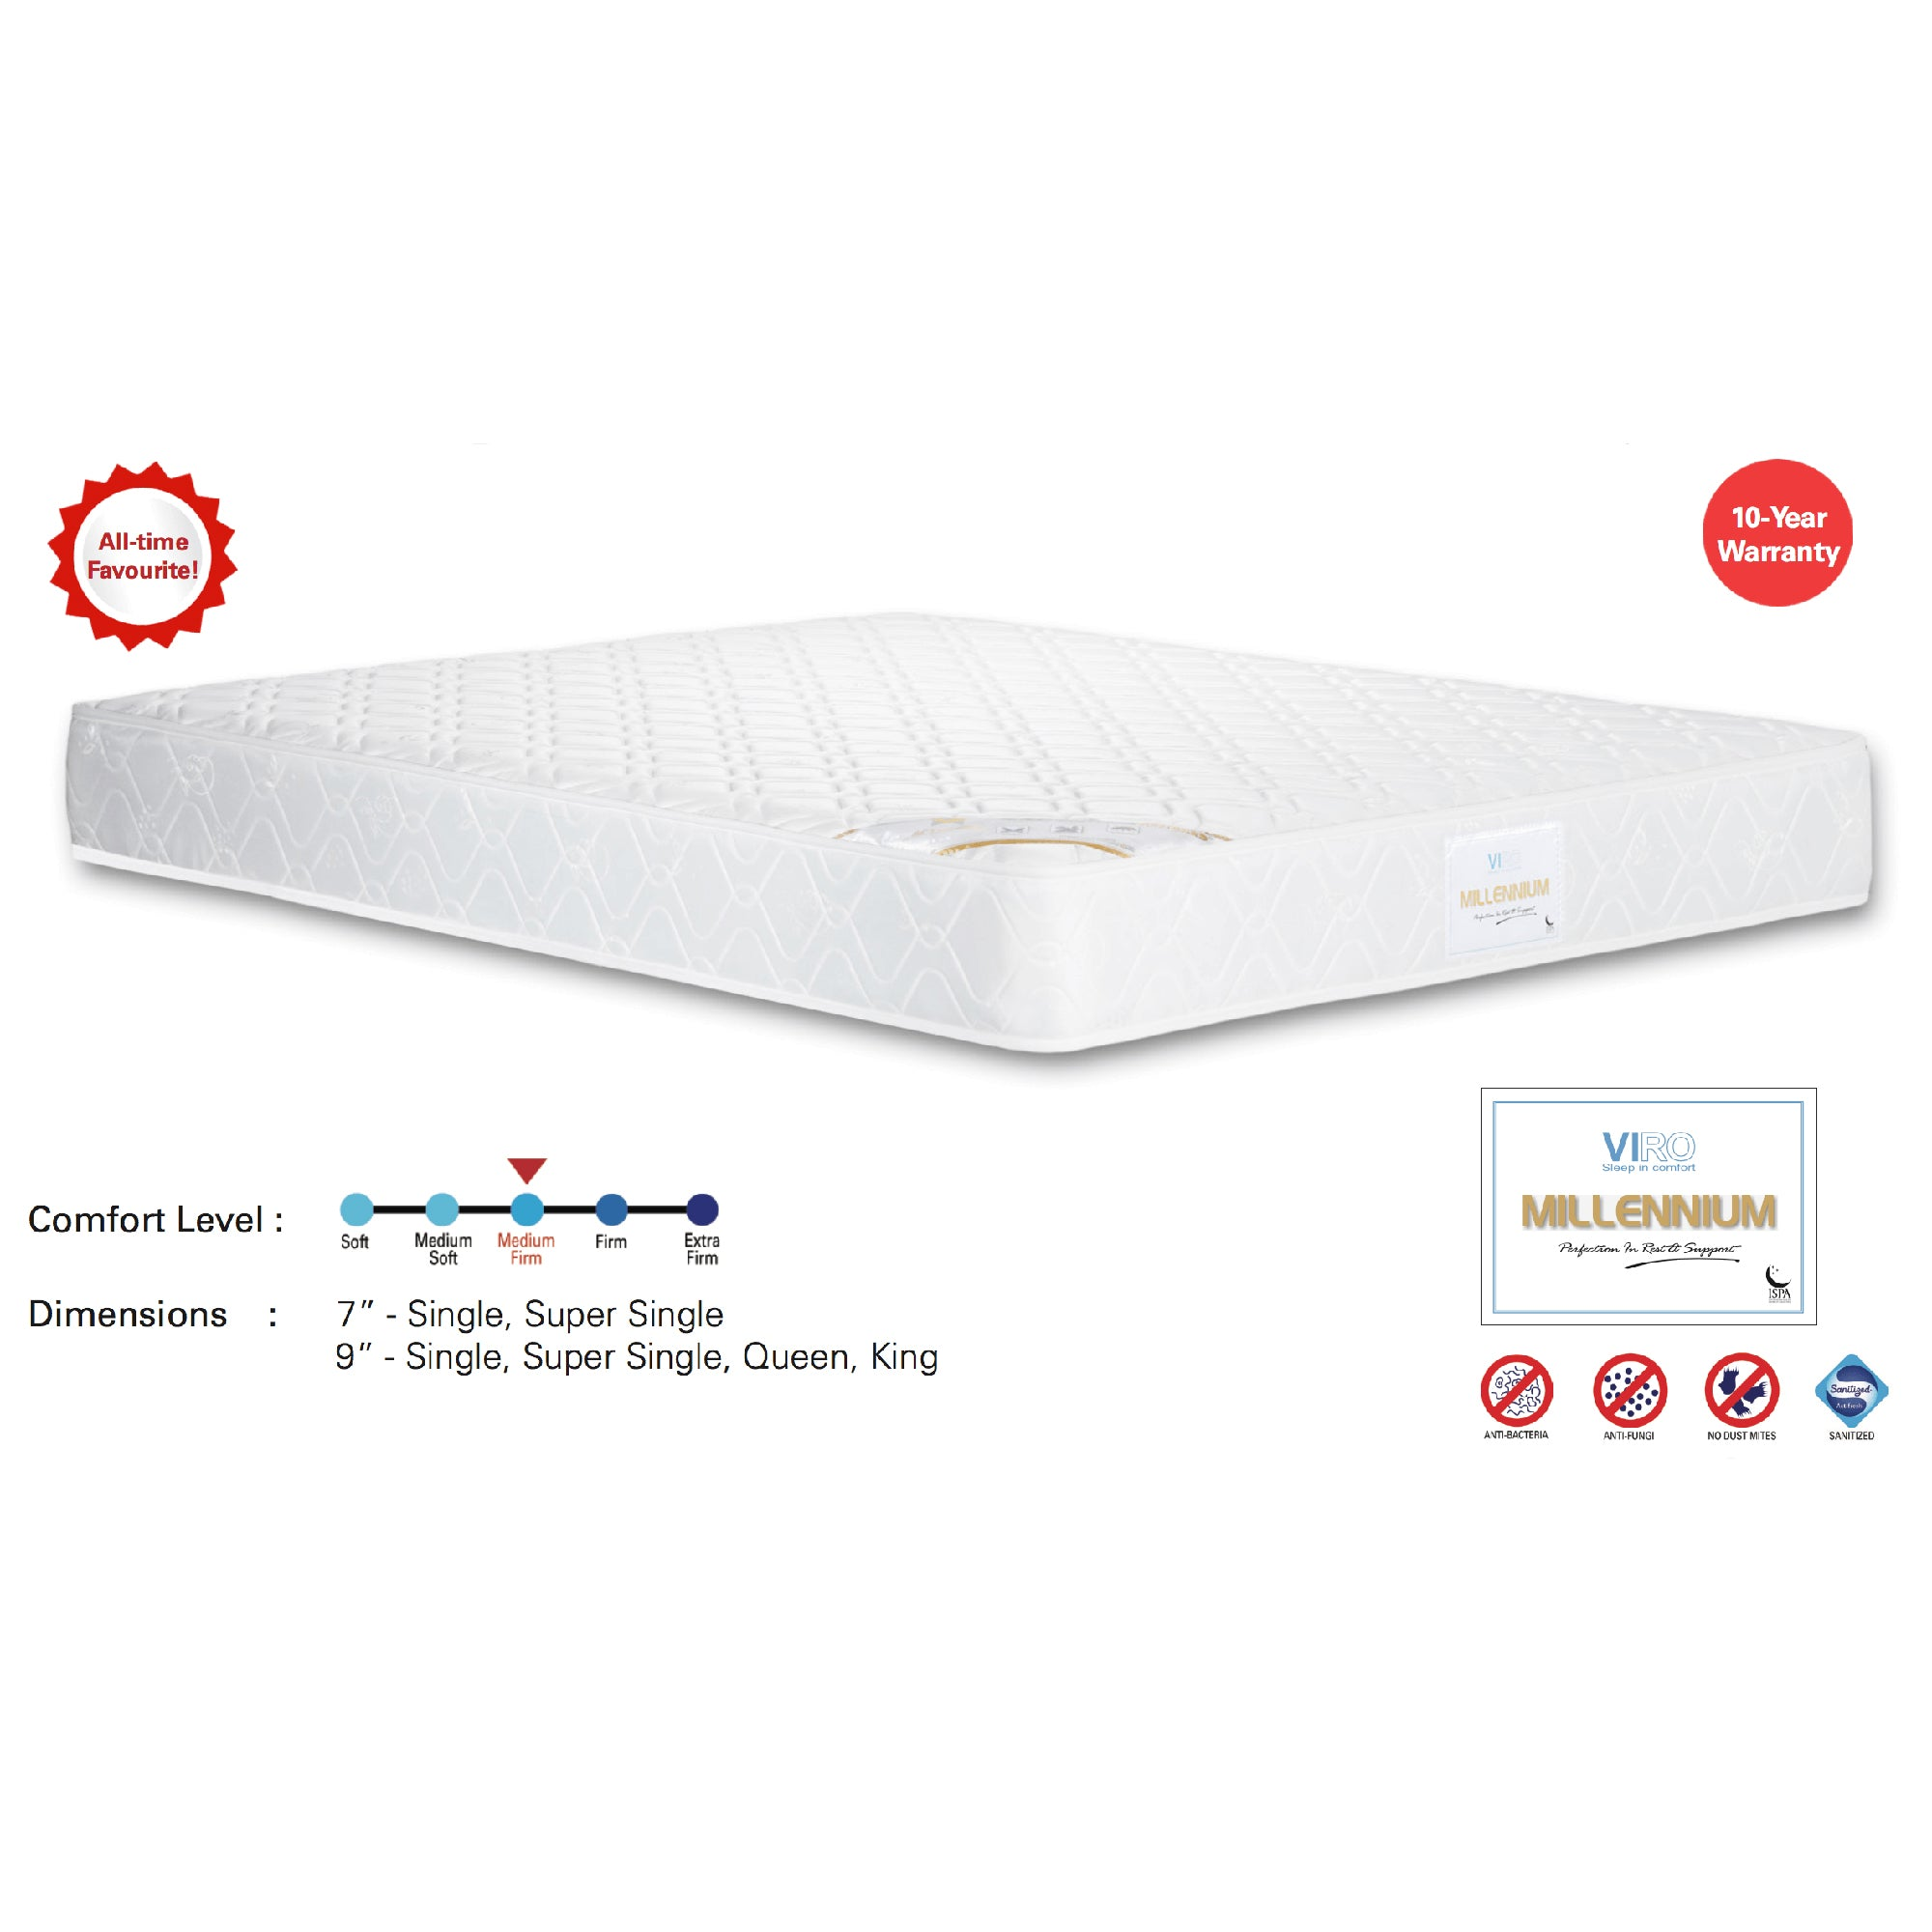 Viro Millennium Spring Mattress (3.5 Feet Super Single Size x 7